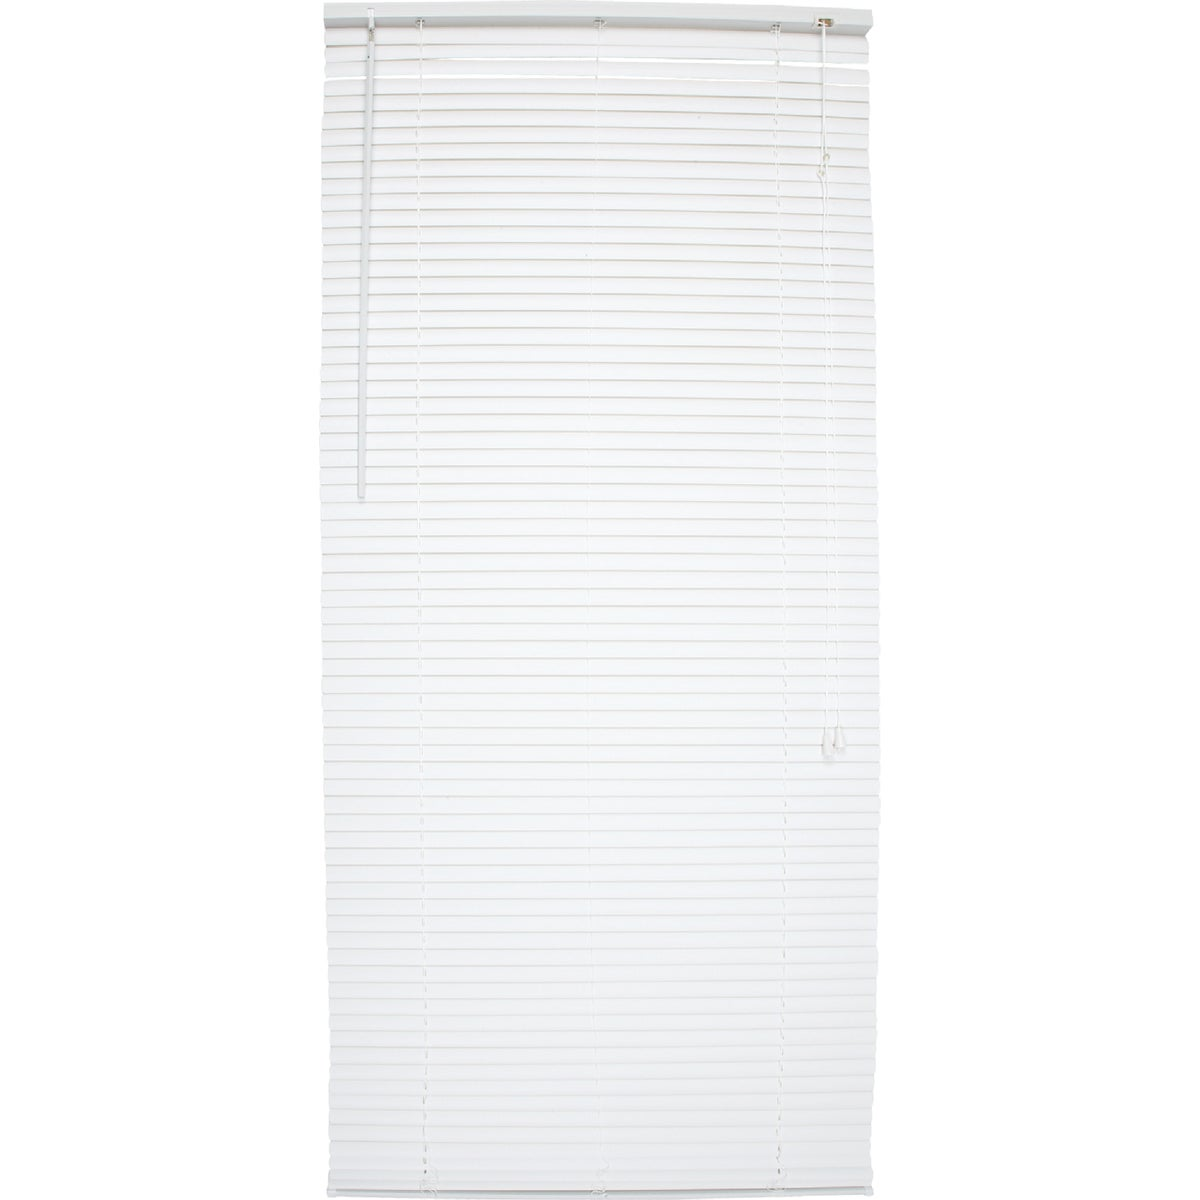 24X64 WHITE MINI BLIND - 614912 by Lotus Wind Incom